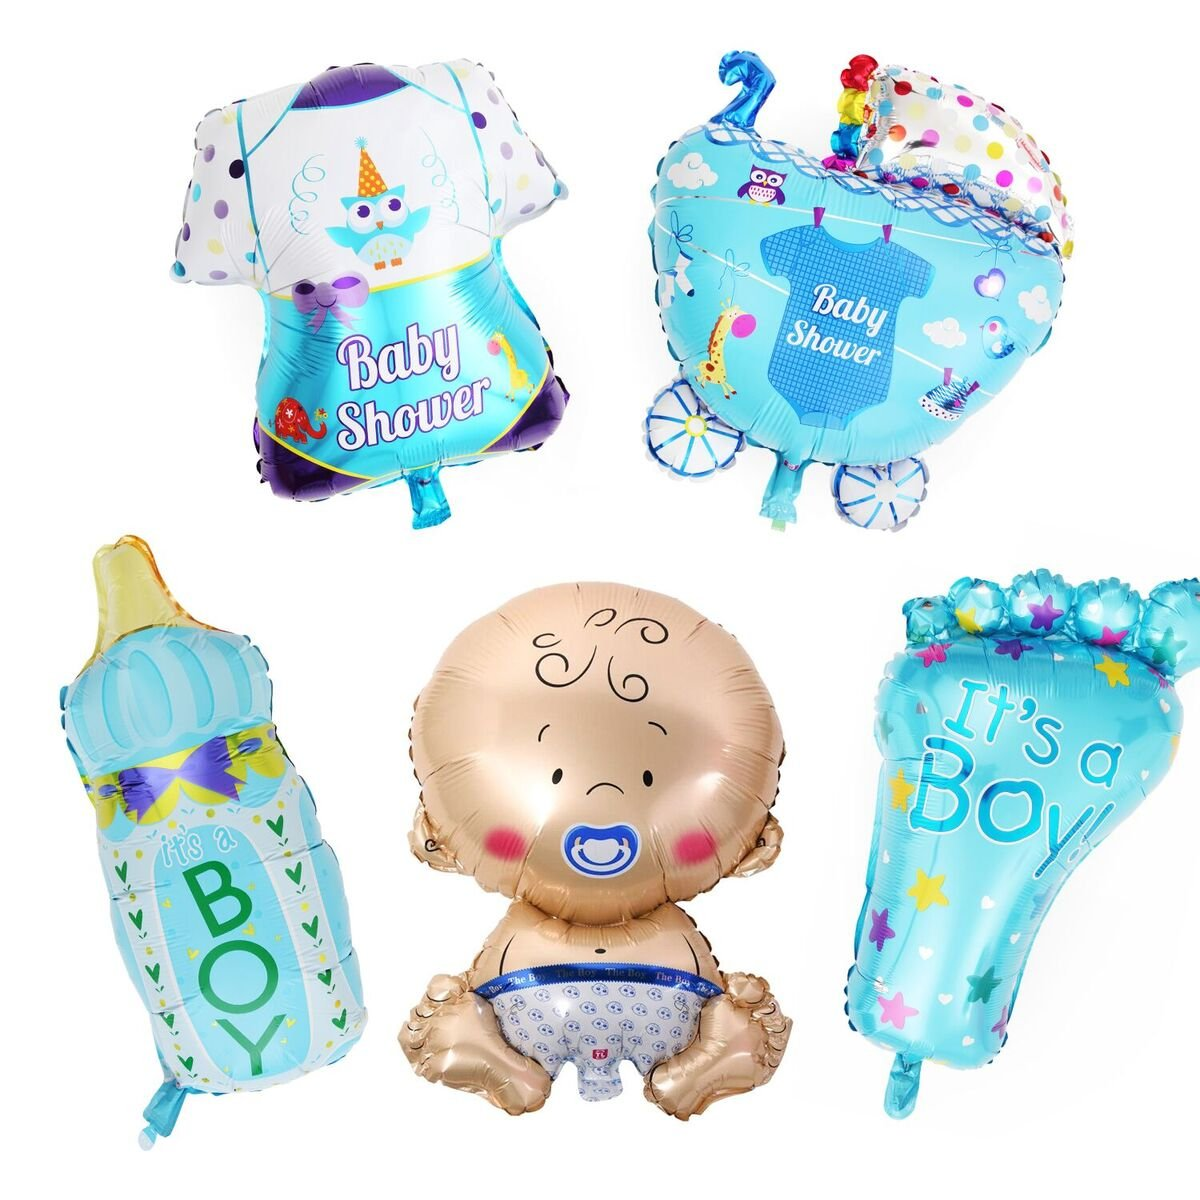 Mylar Balloons 5 Pcs Set Baby Shower Decorations For Boy With 100 Free Spot Glue LAttLiv - Baby Shower Balloon Set